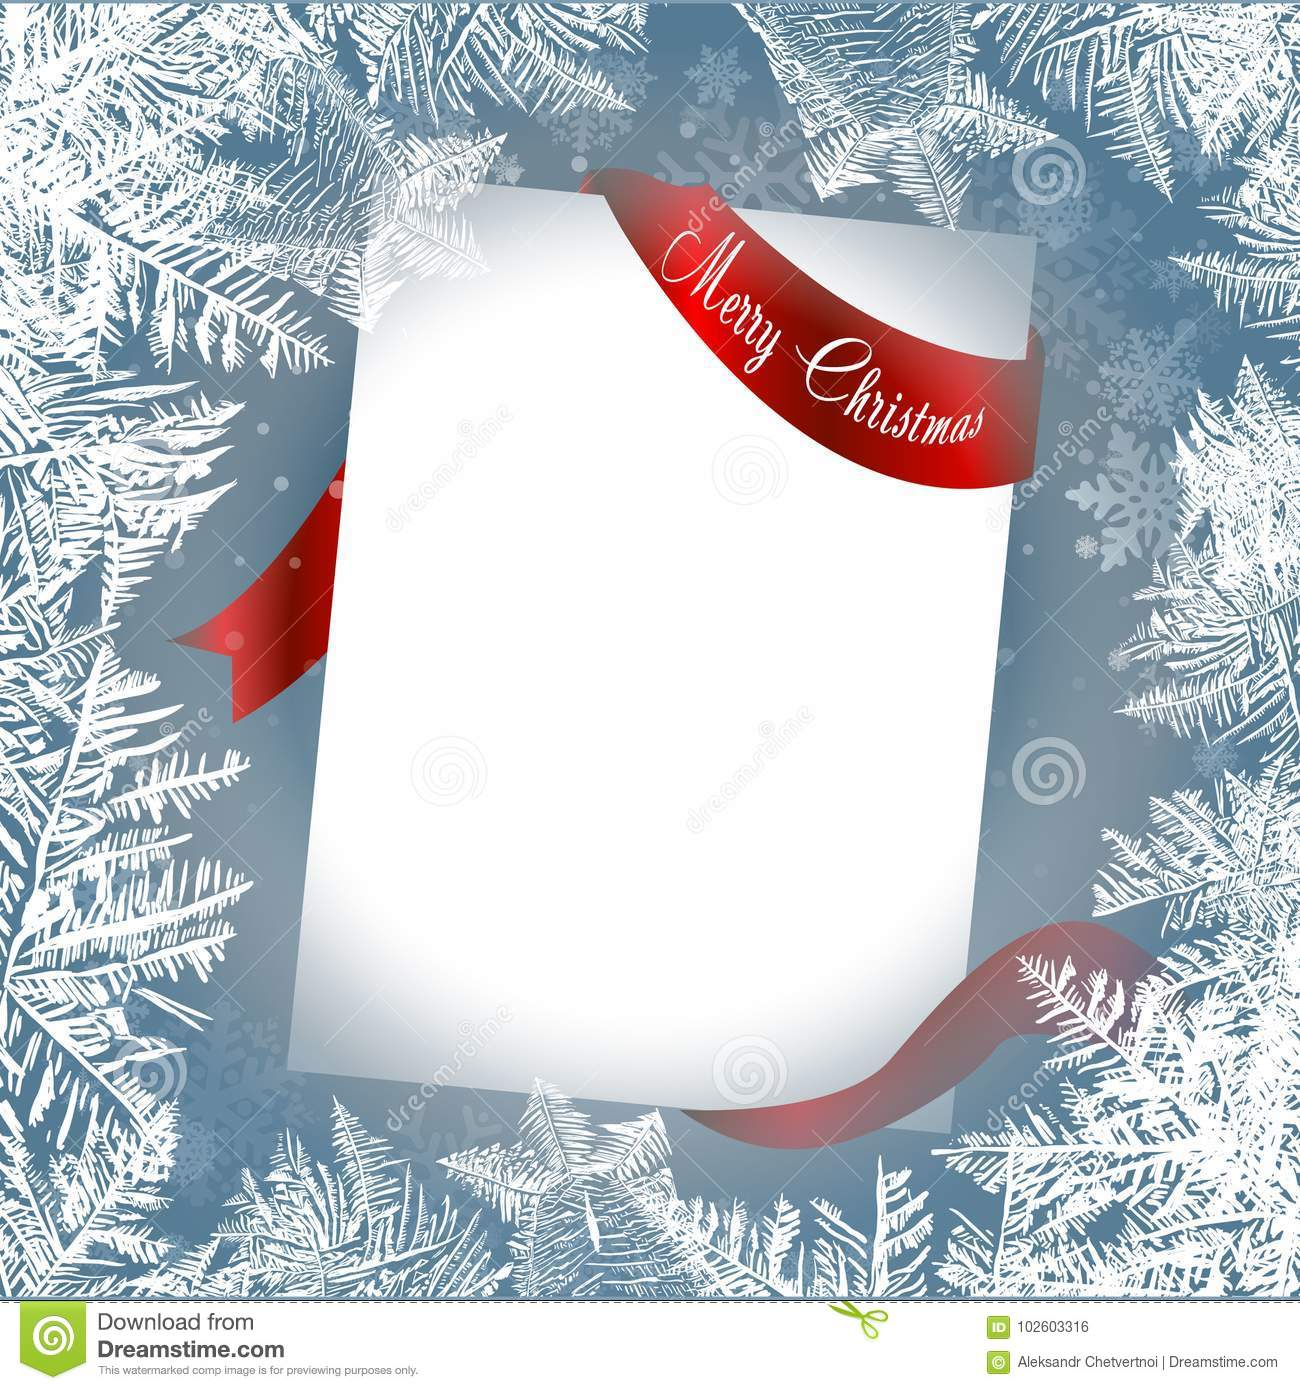 2018 new year on ice frosted background new year paper with red ribbons motivation concept a letter to santa claus template